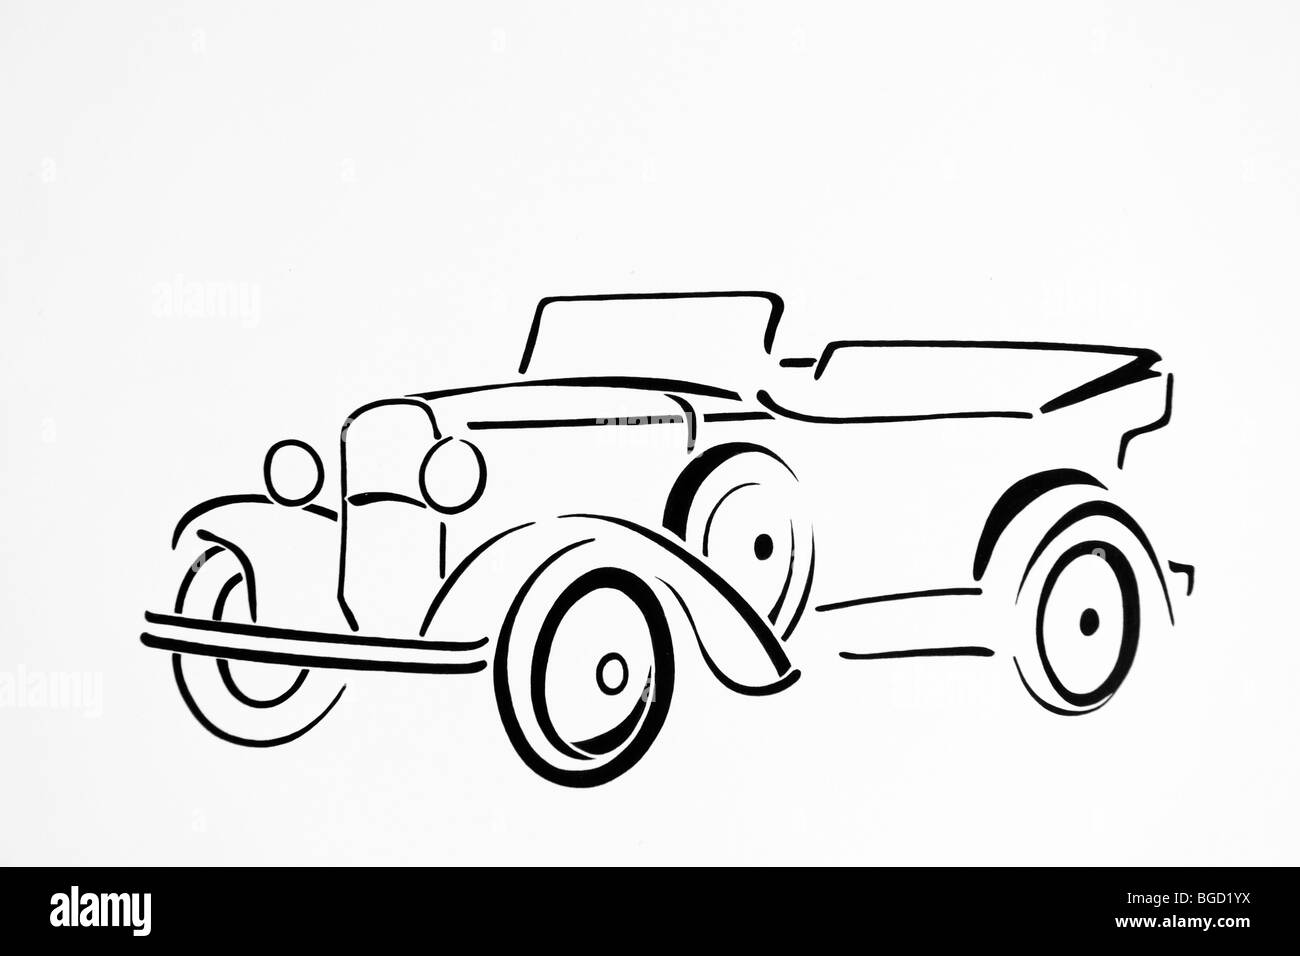 Old Car Black and White Stock Photos & Images - Alamy